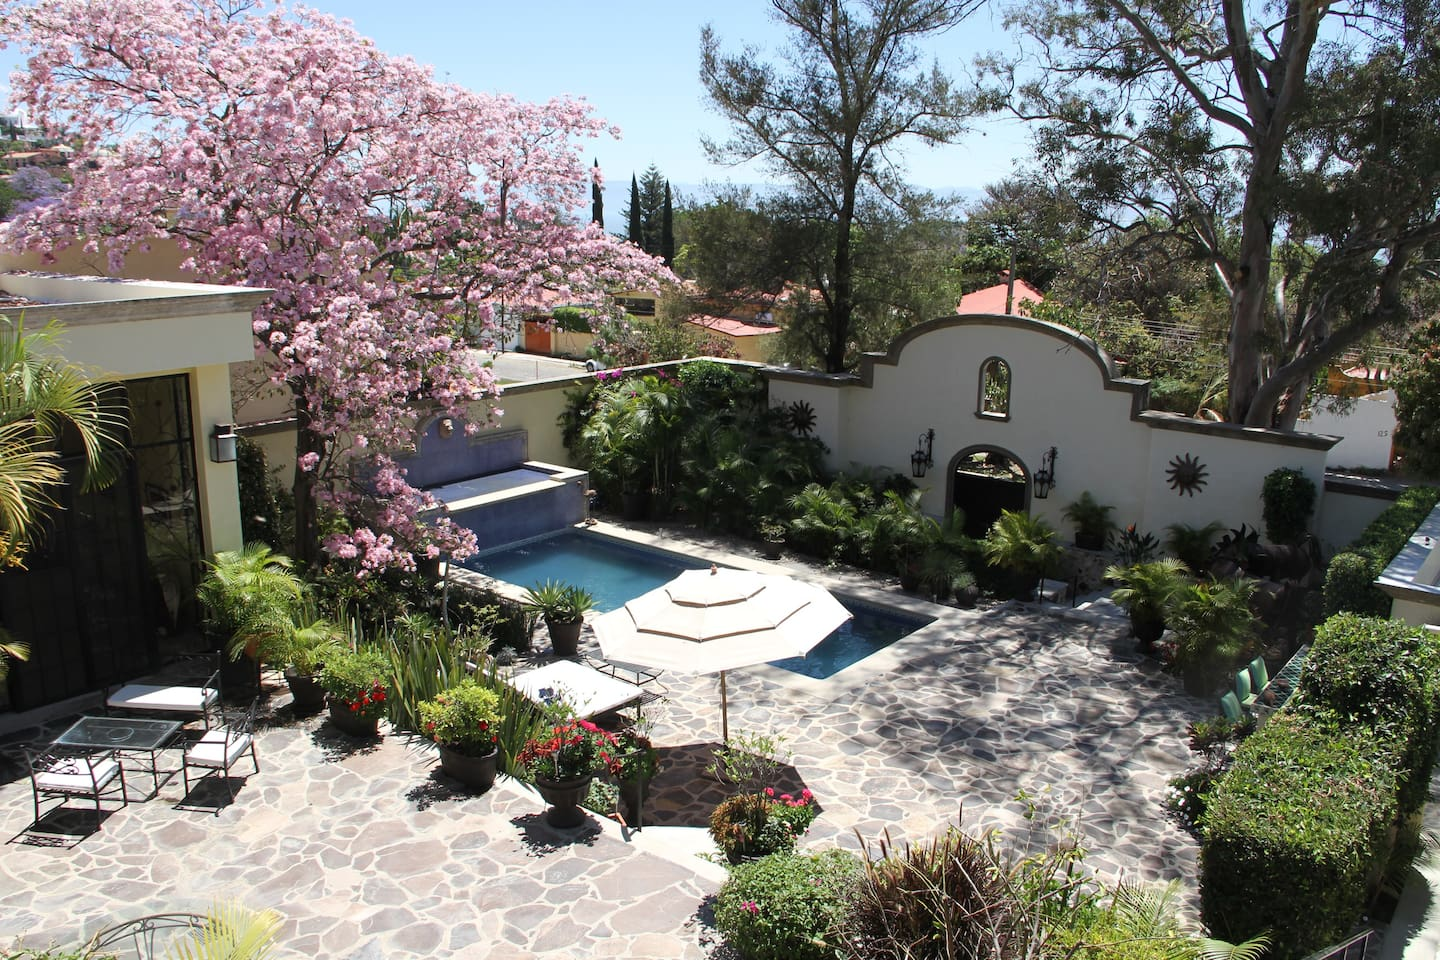 Overview of garden and pool area